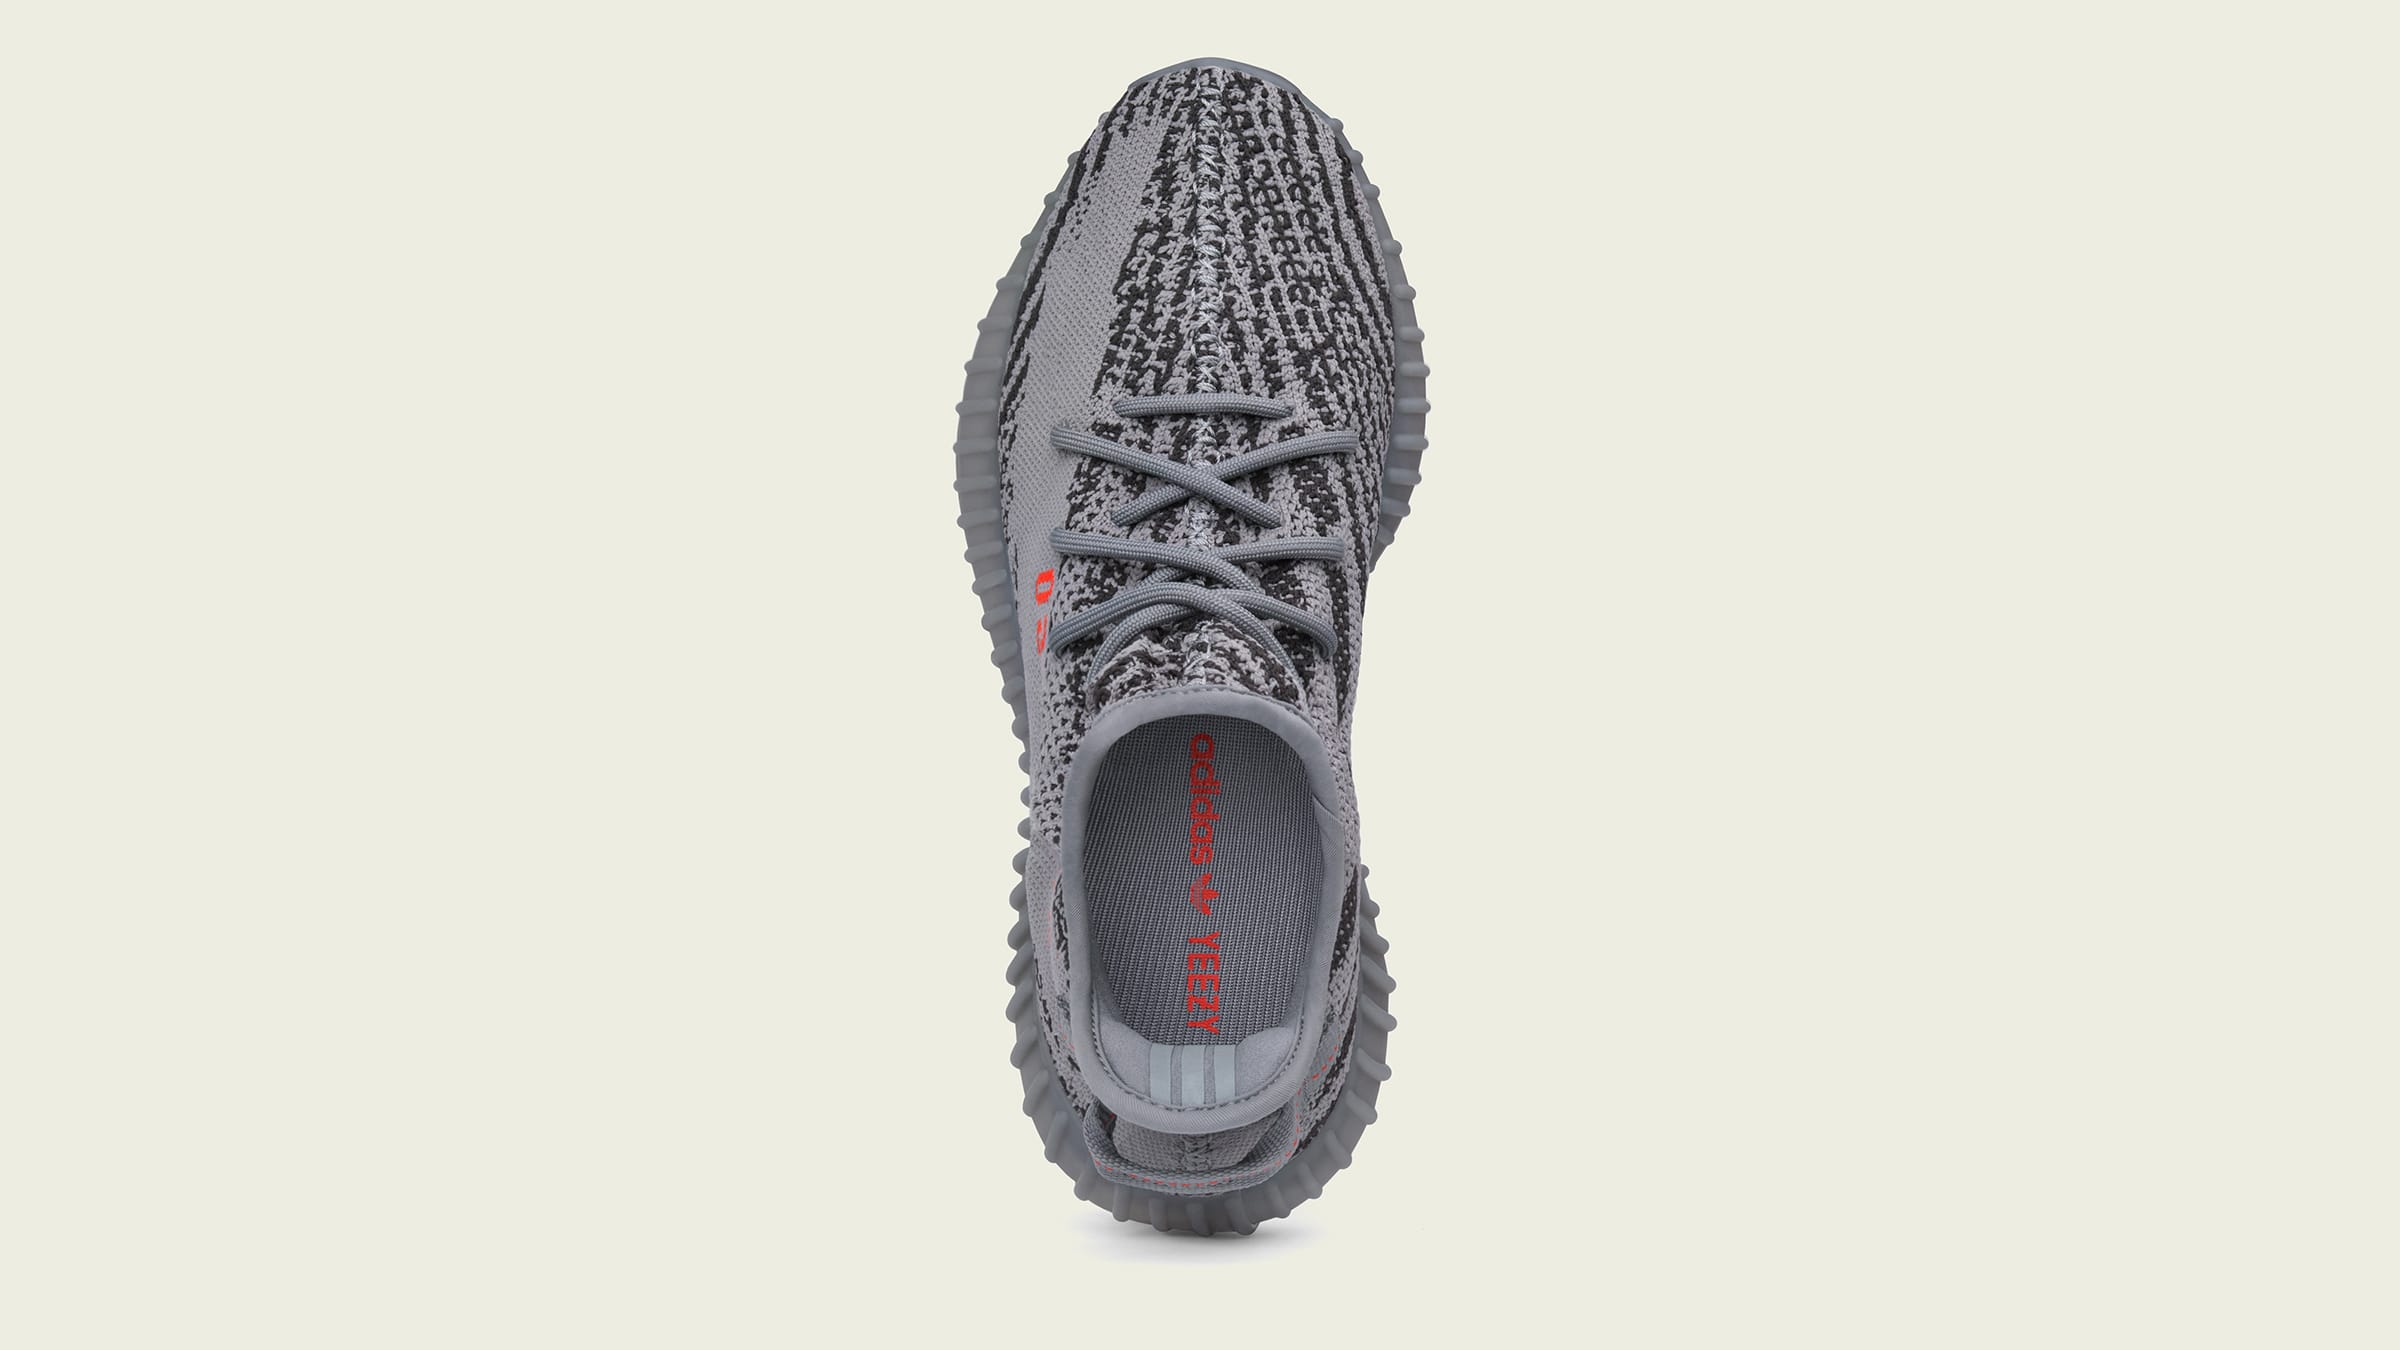 3c06f9921a920 The shoe that began the Yeezy Boost 350 V2 movement